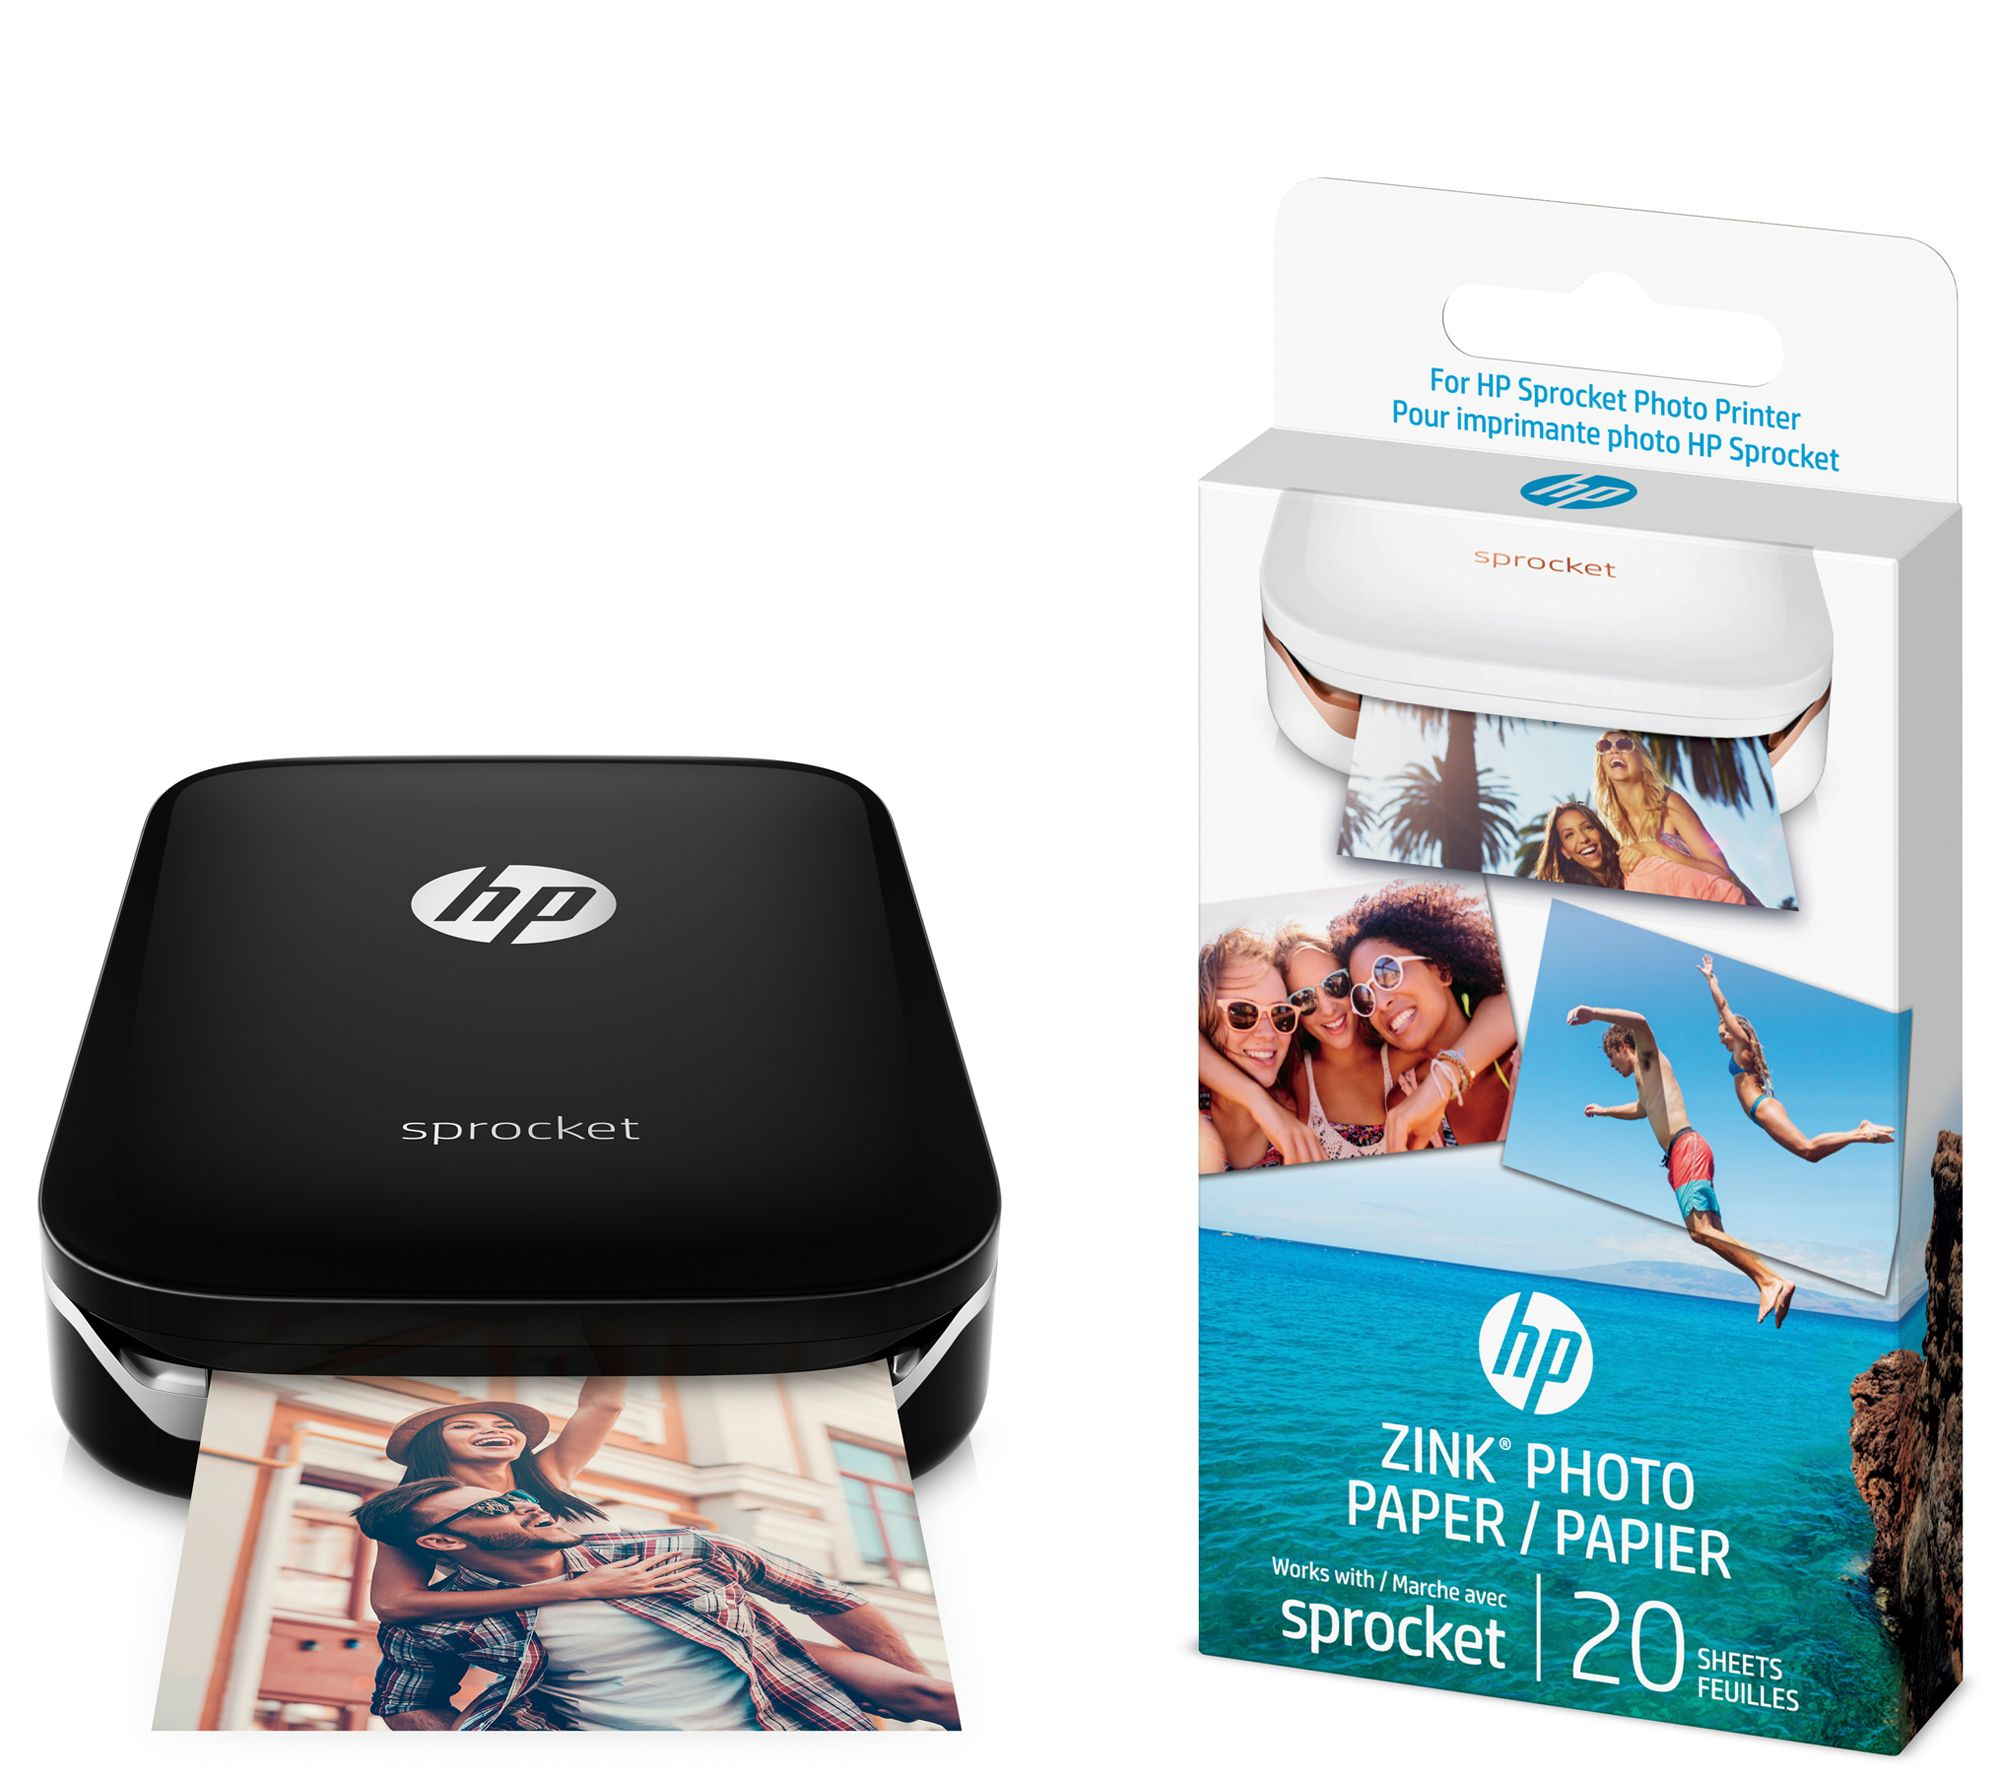 Hp Sprocket Photo Printer With Paper And Printer Sleeve Qvccom